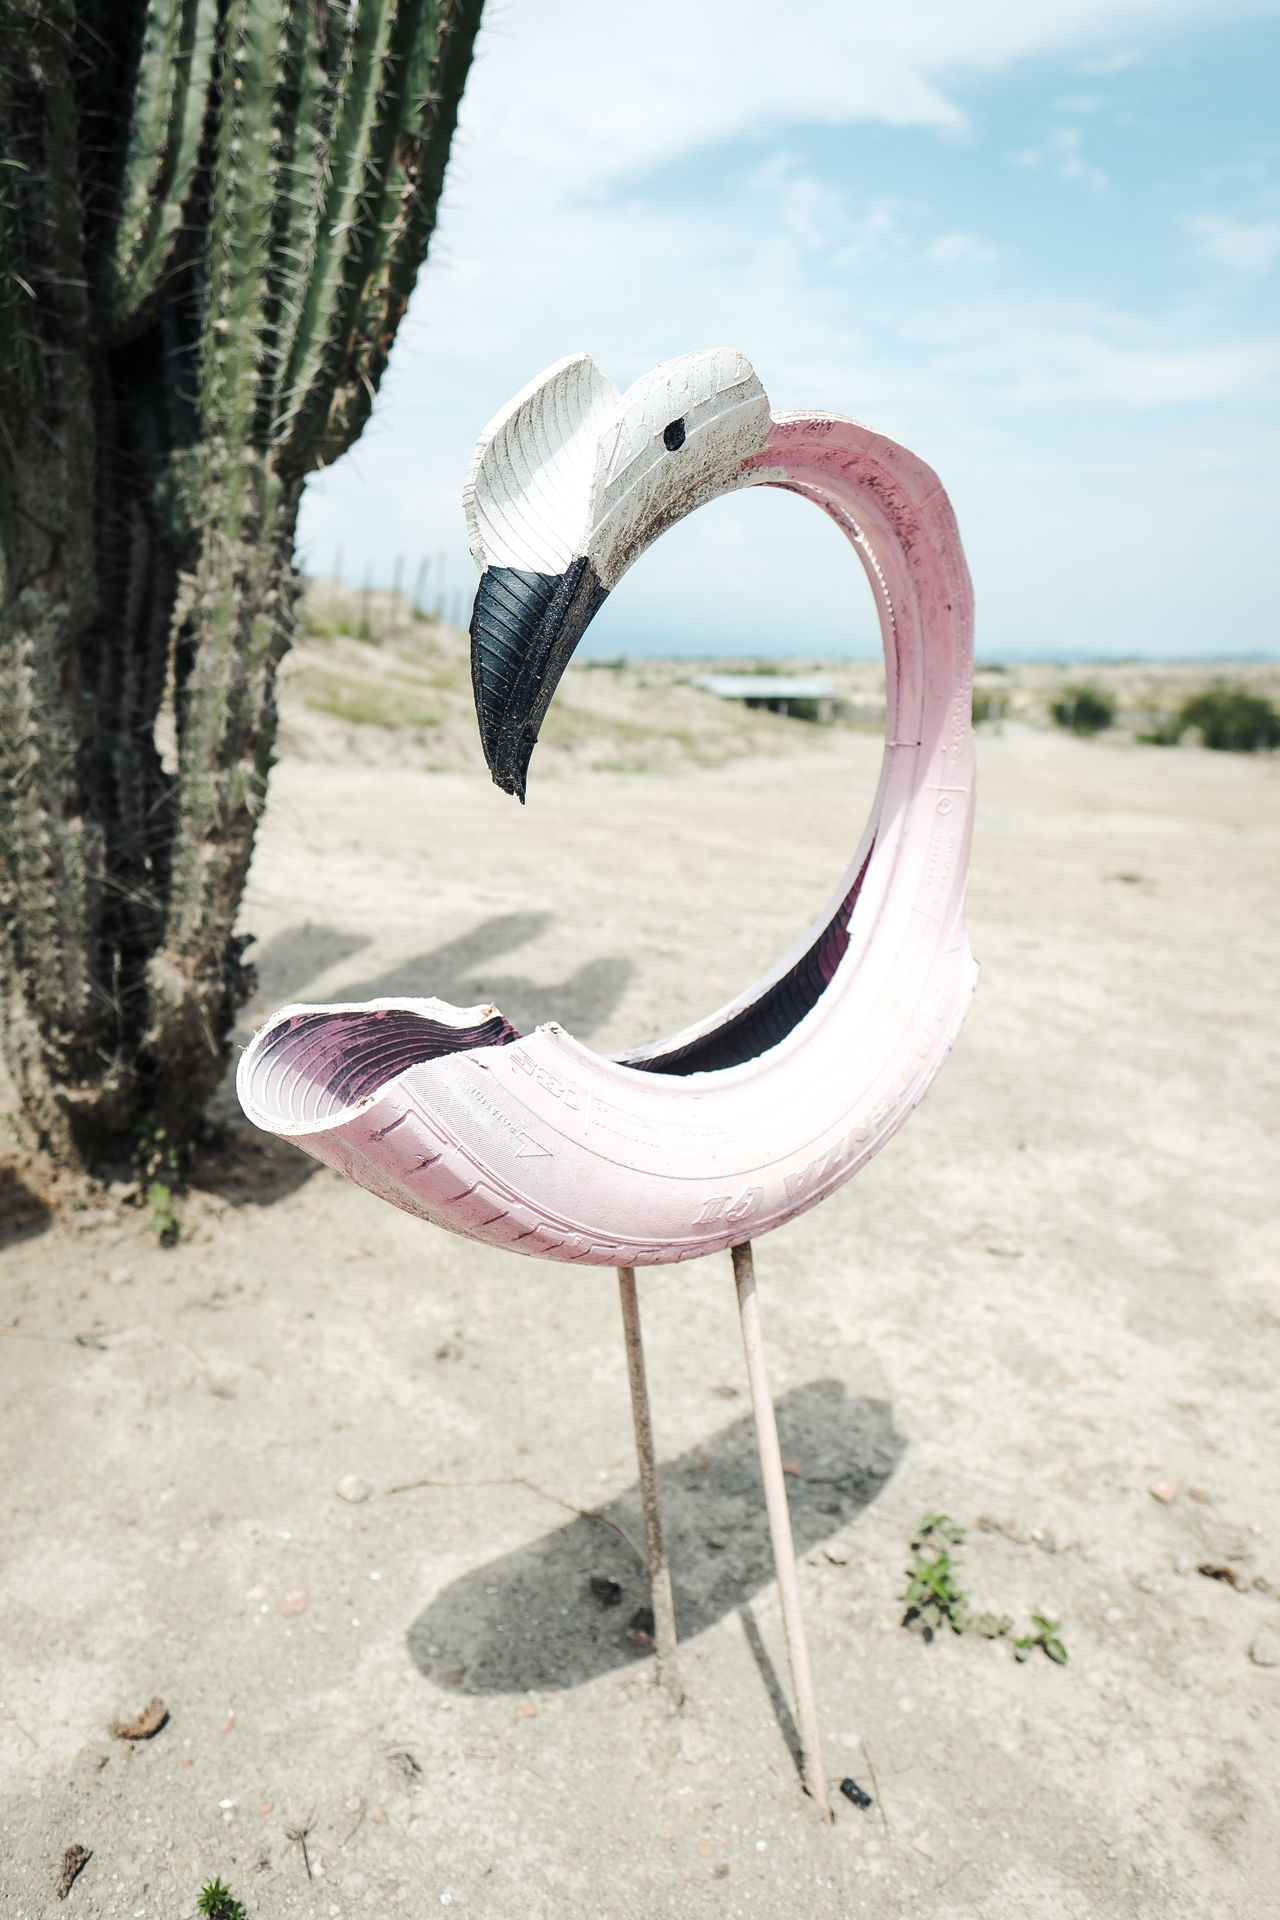 Art is everywhere Animal Themes Animal Wildlife Animals In The Wild Beak Beauty In Nature Bird Close-up Cradle To Cradle Day Flamingo Nature No People One Animal Outdoors Pelican Sky Swan Tire